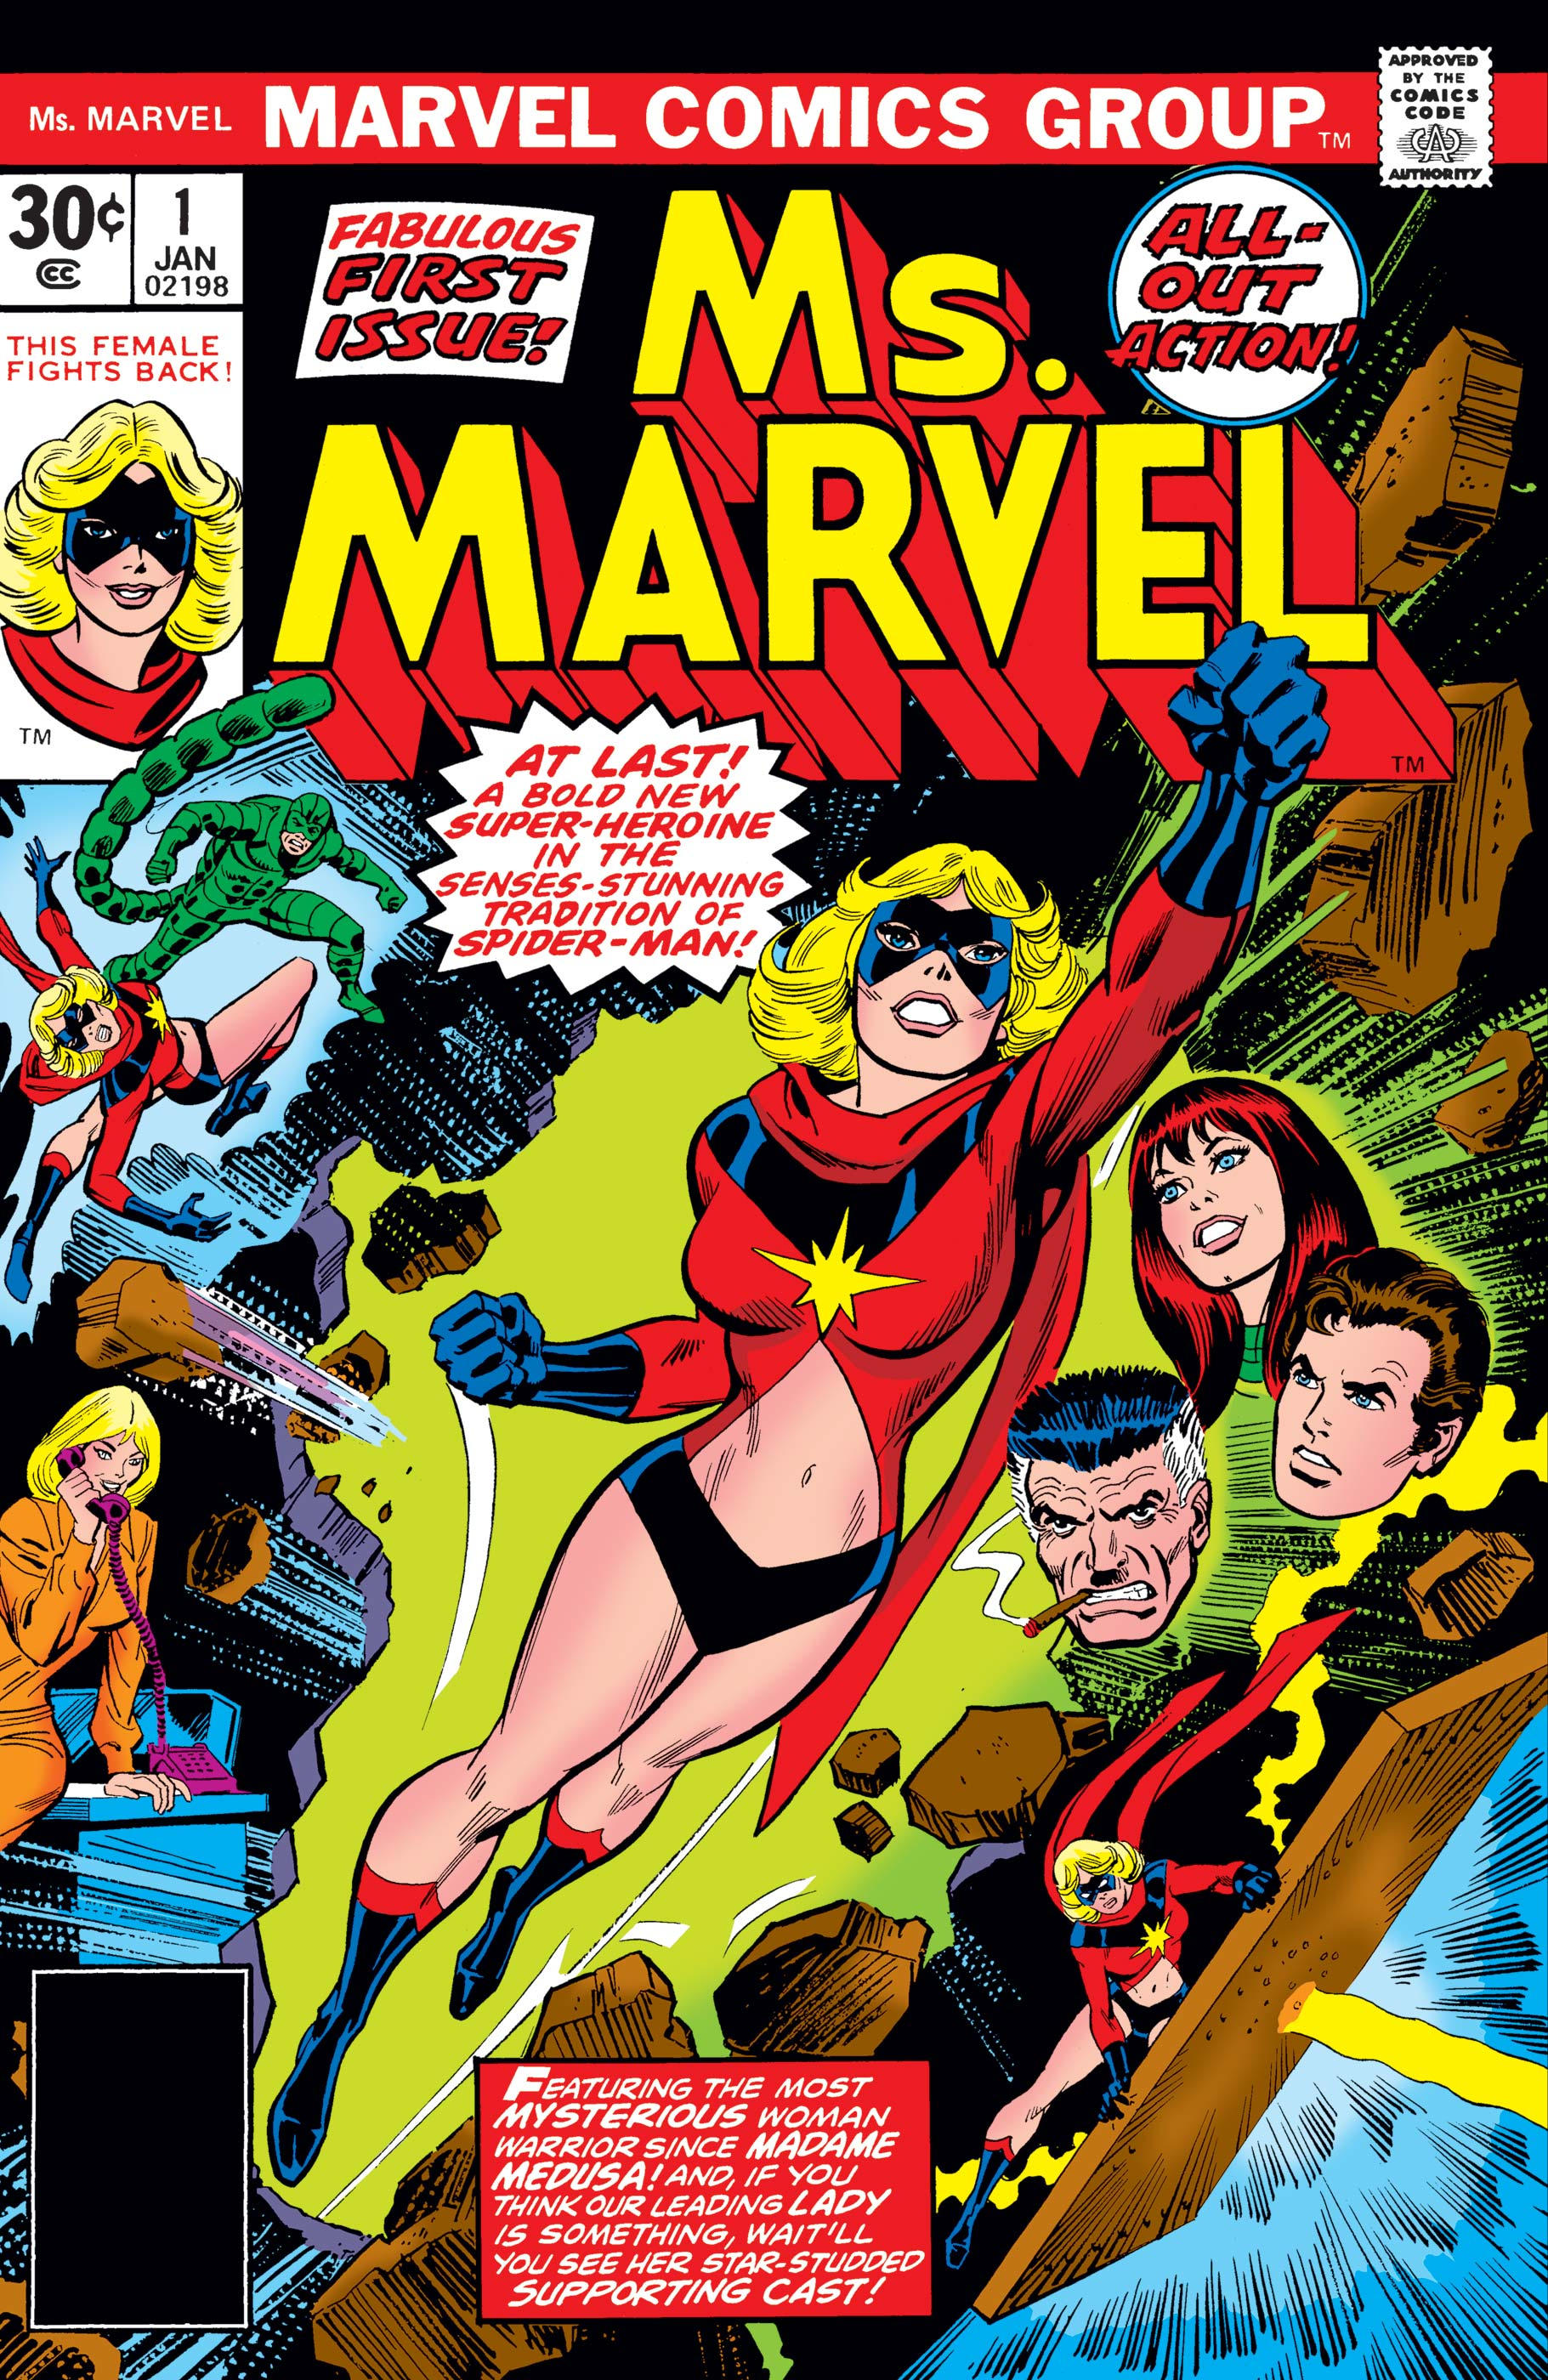 Ms. Marvel (1977) #1